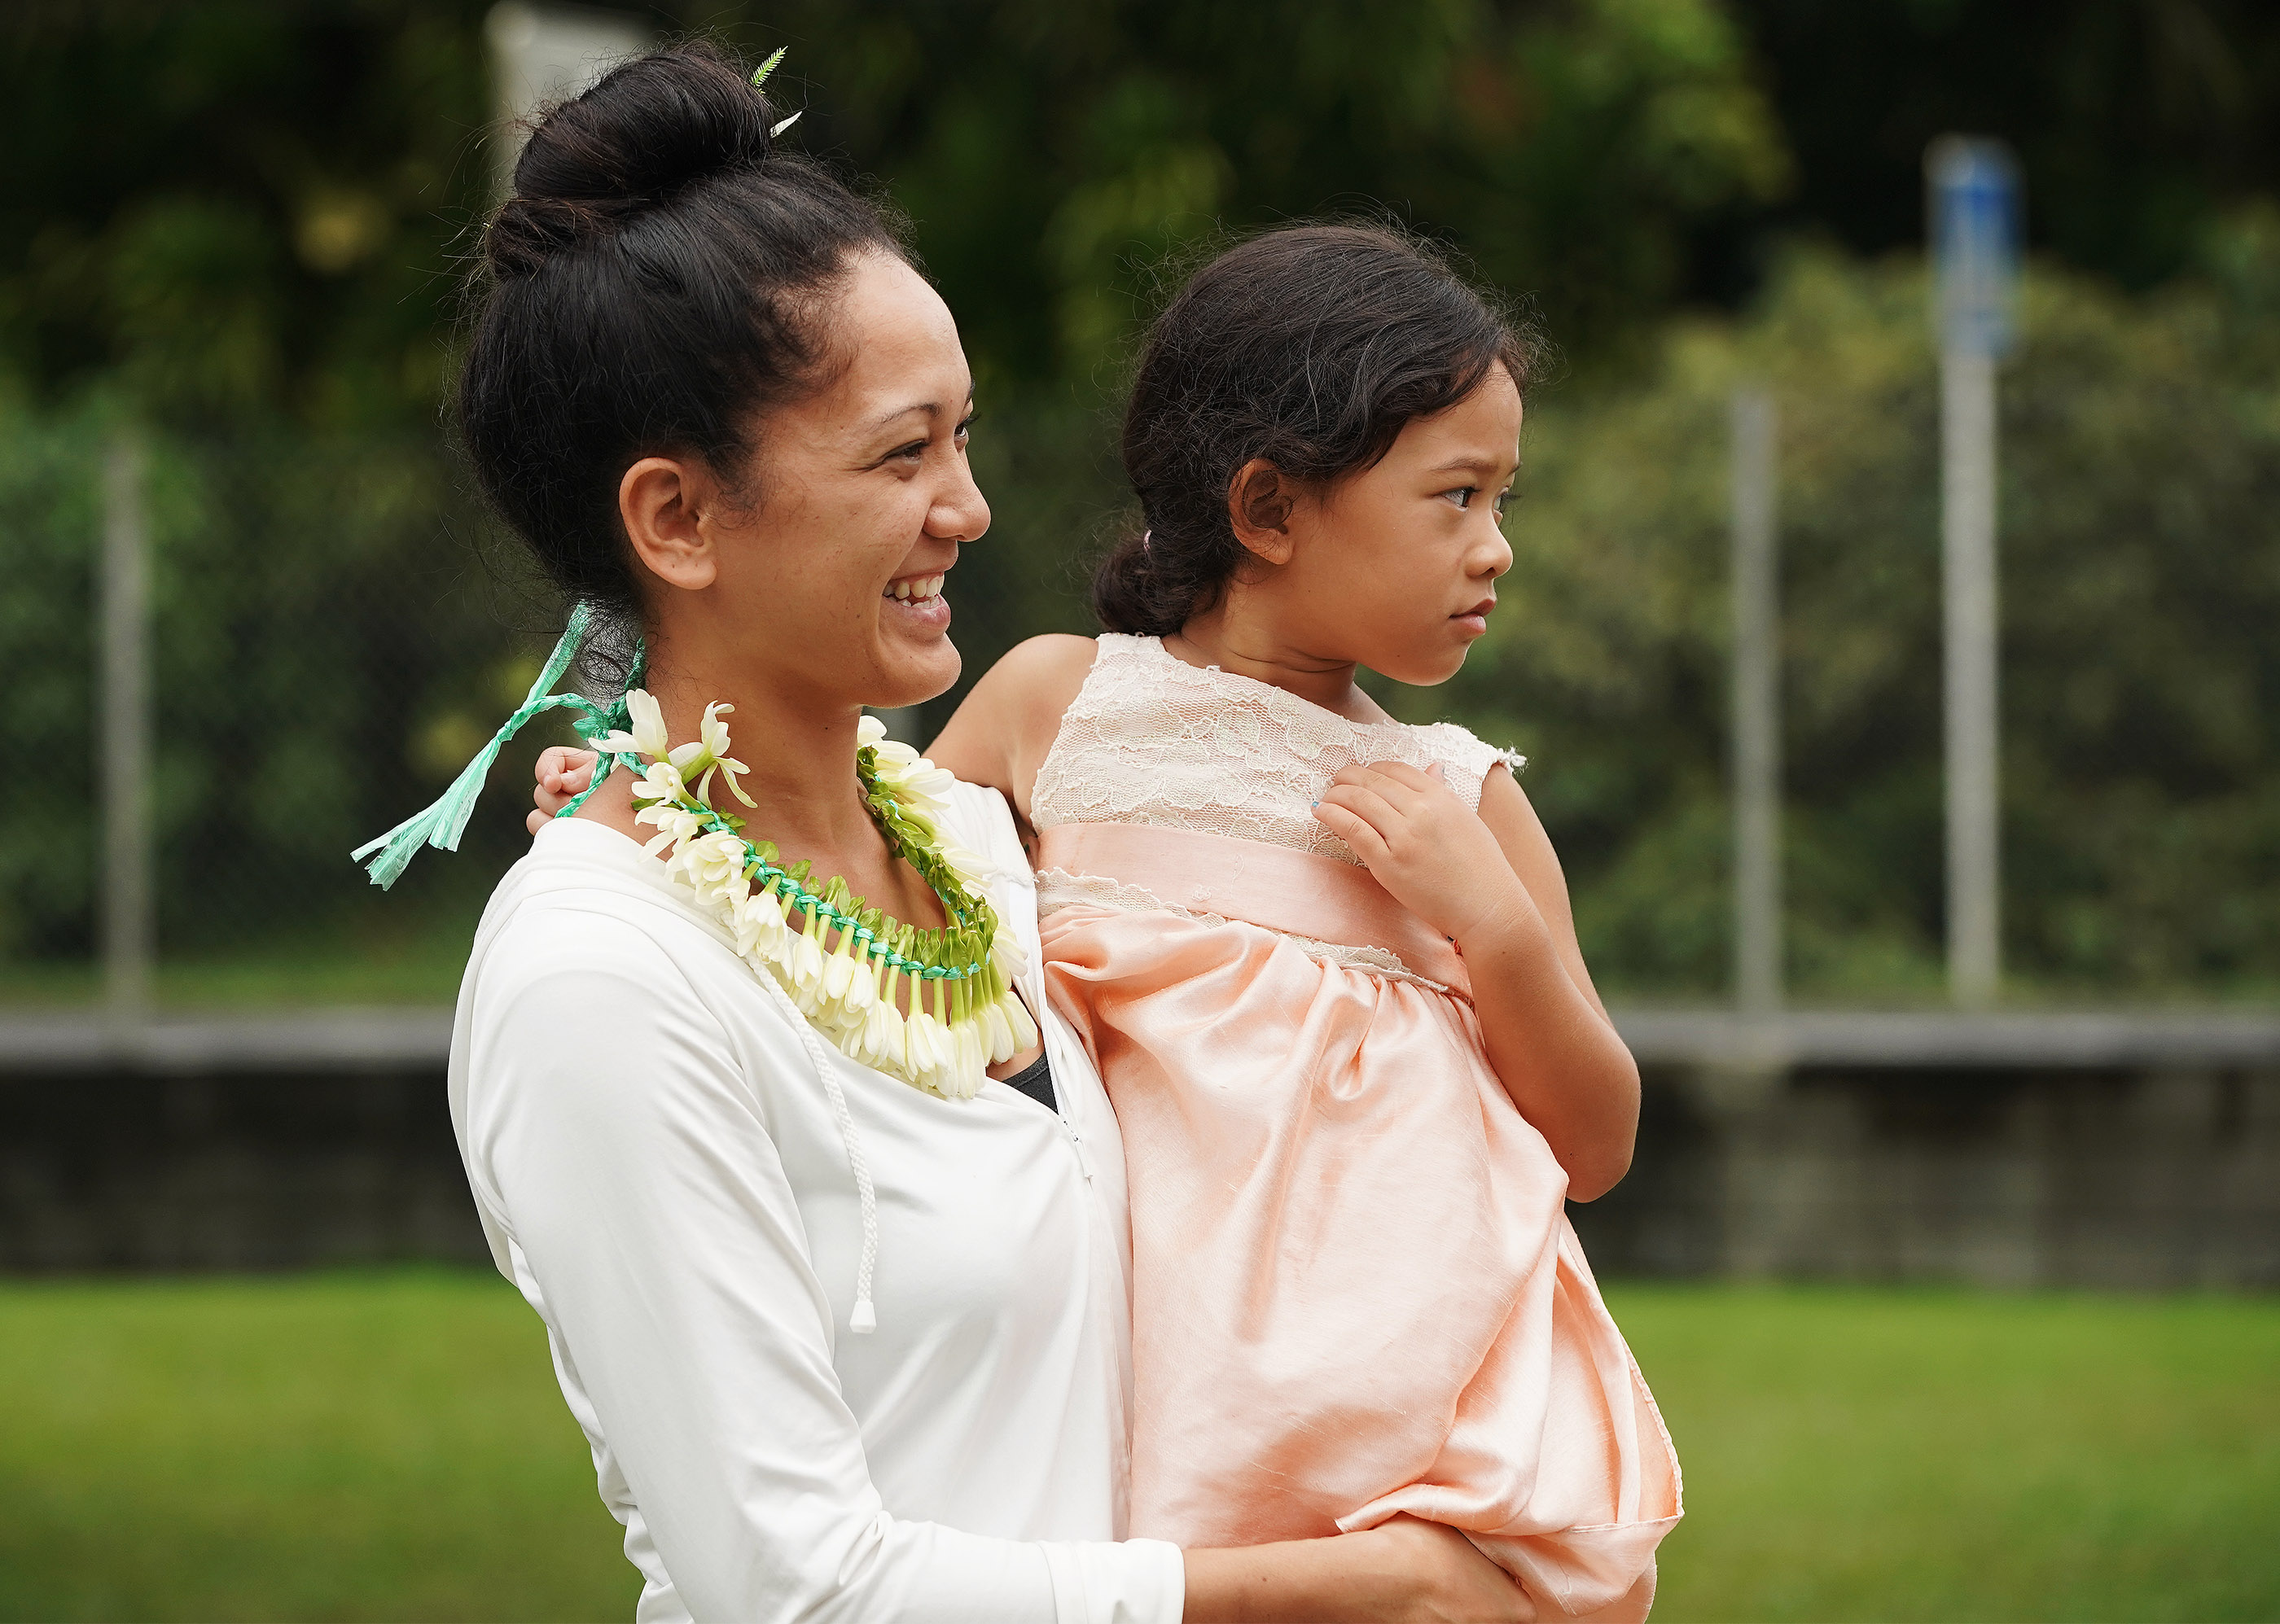 Mau Isabelle Johnston holds her daughter May Kohana after meetings at The Church of Jesus Christ of Latter-day Saints in Papeete, Tahiti, on May 26, 2019.